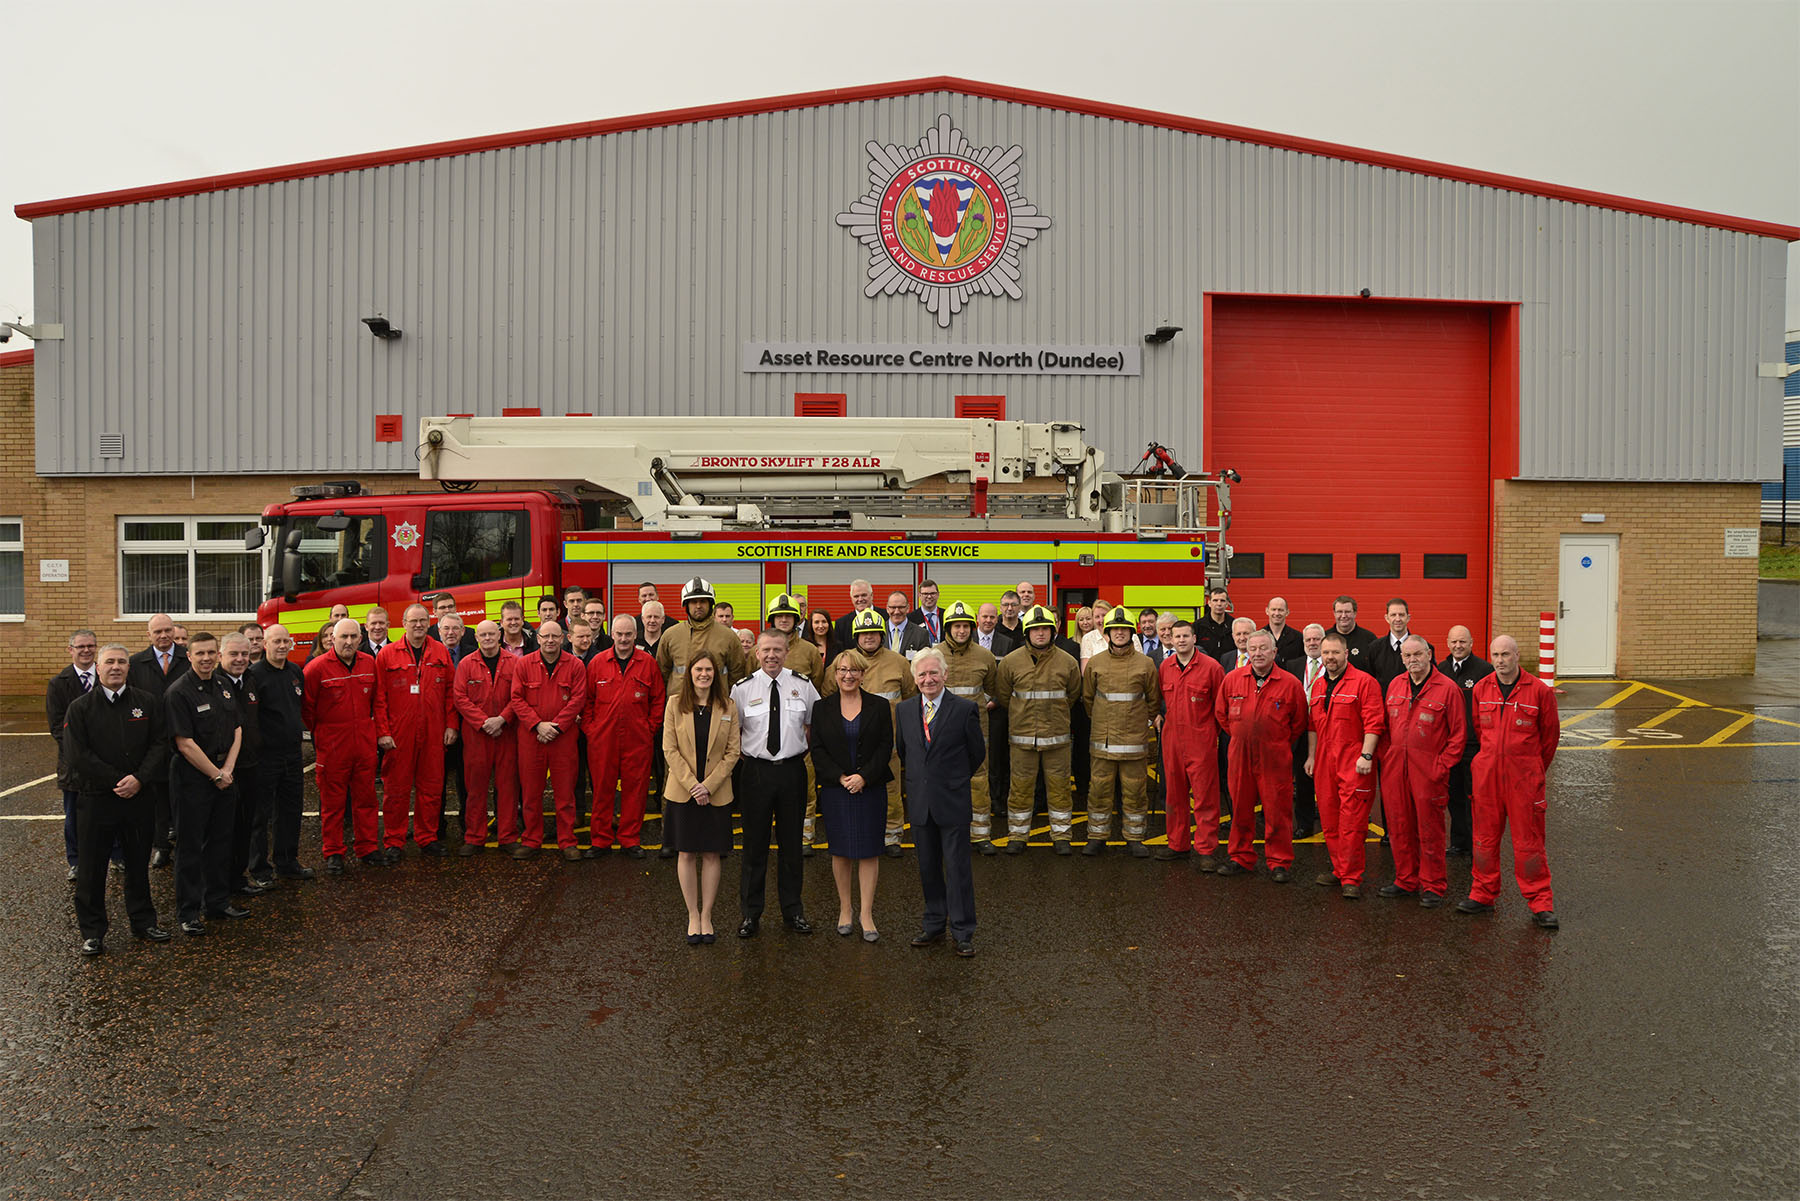 New Asset Resource Centre formally opened in Dundee